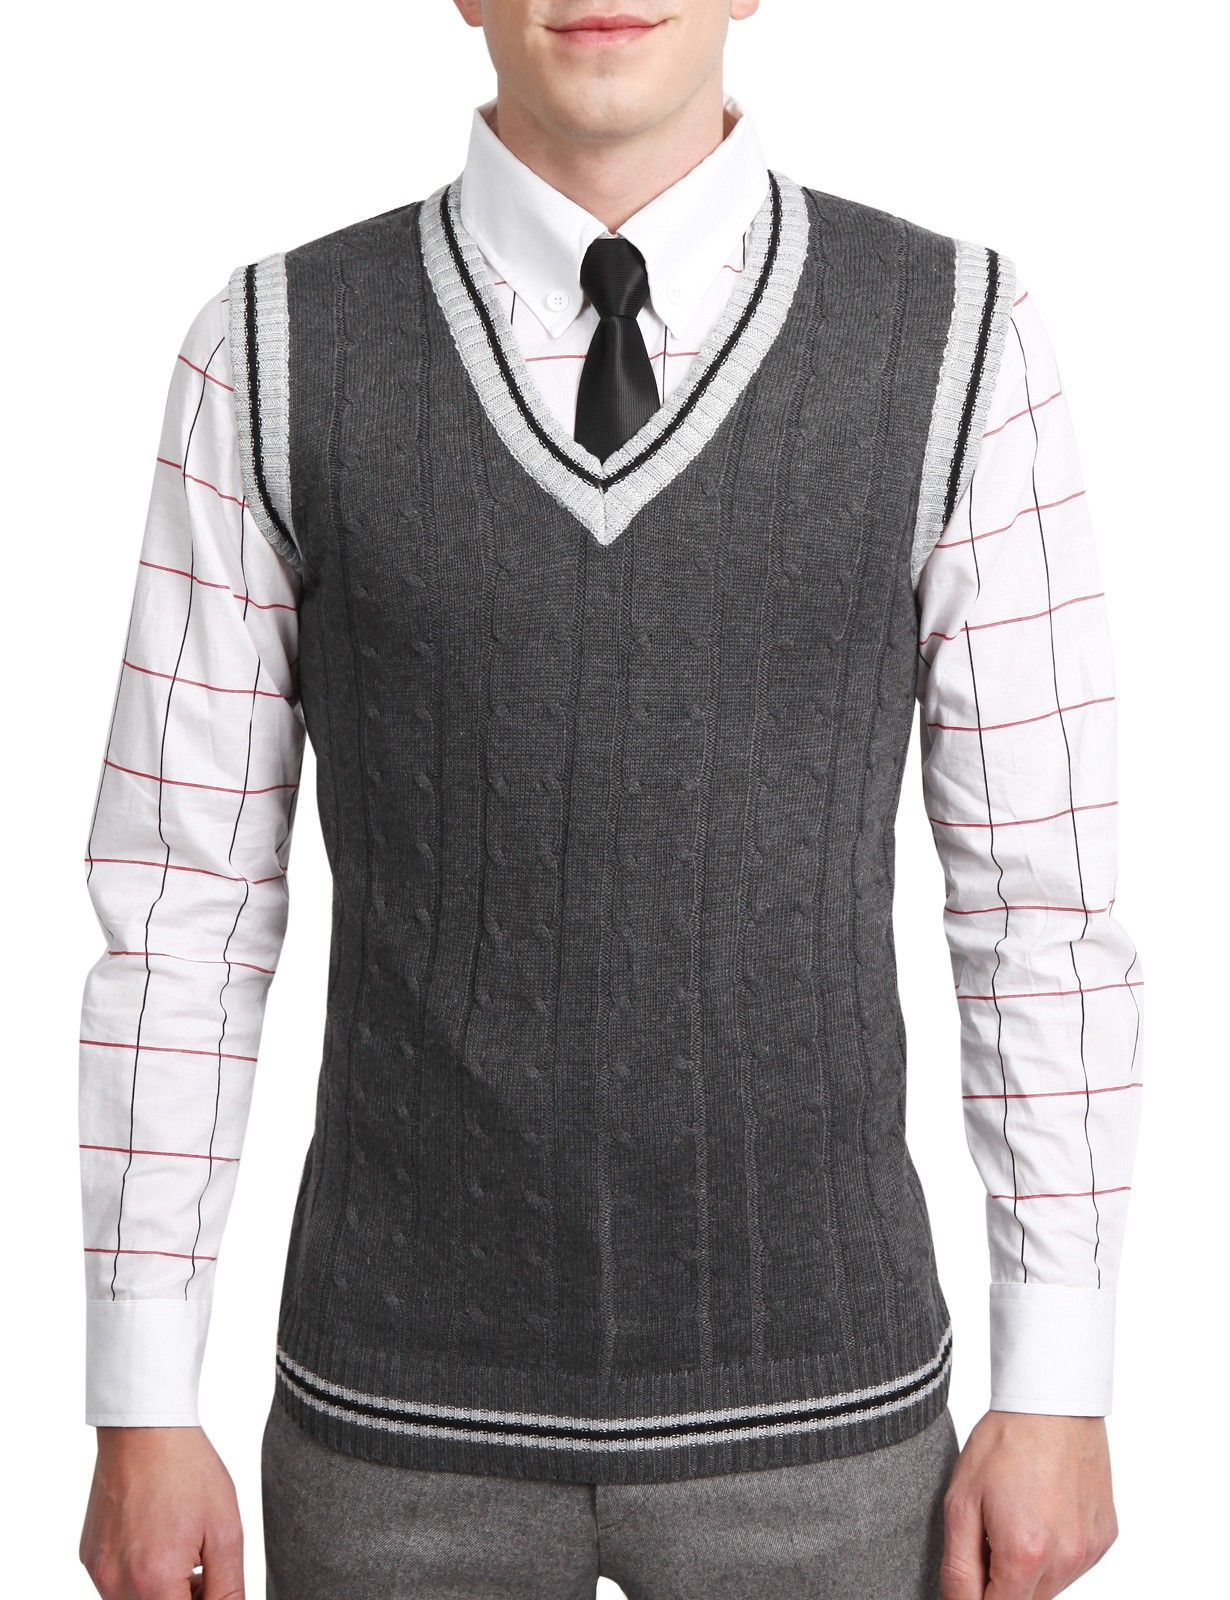 Mens Casual V-Neck Sweater Vest | Men's Fashion | Pinterest ...